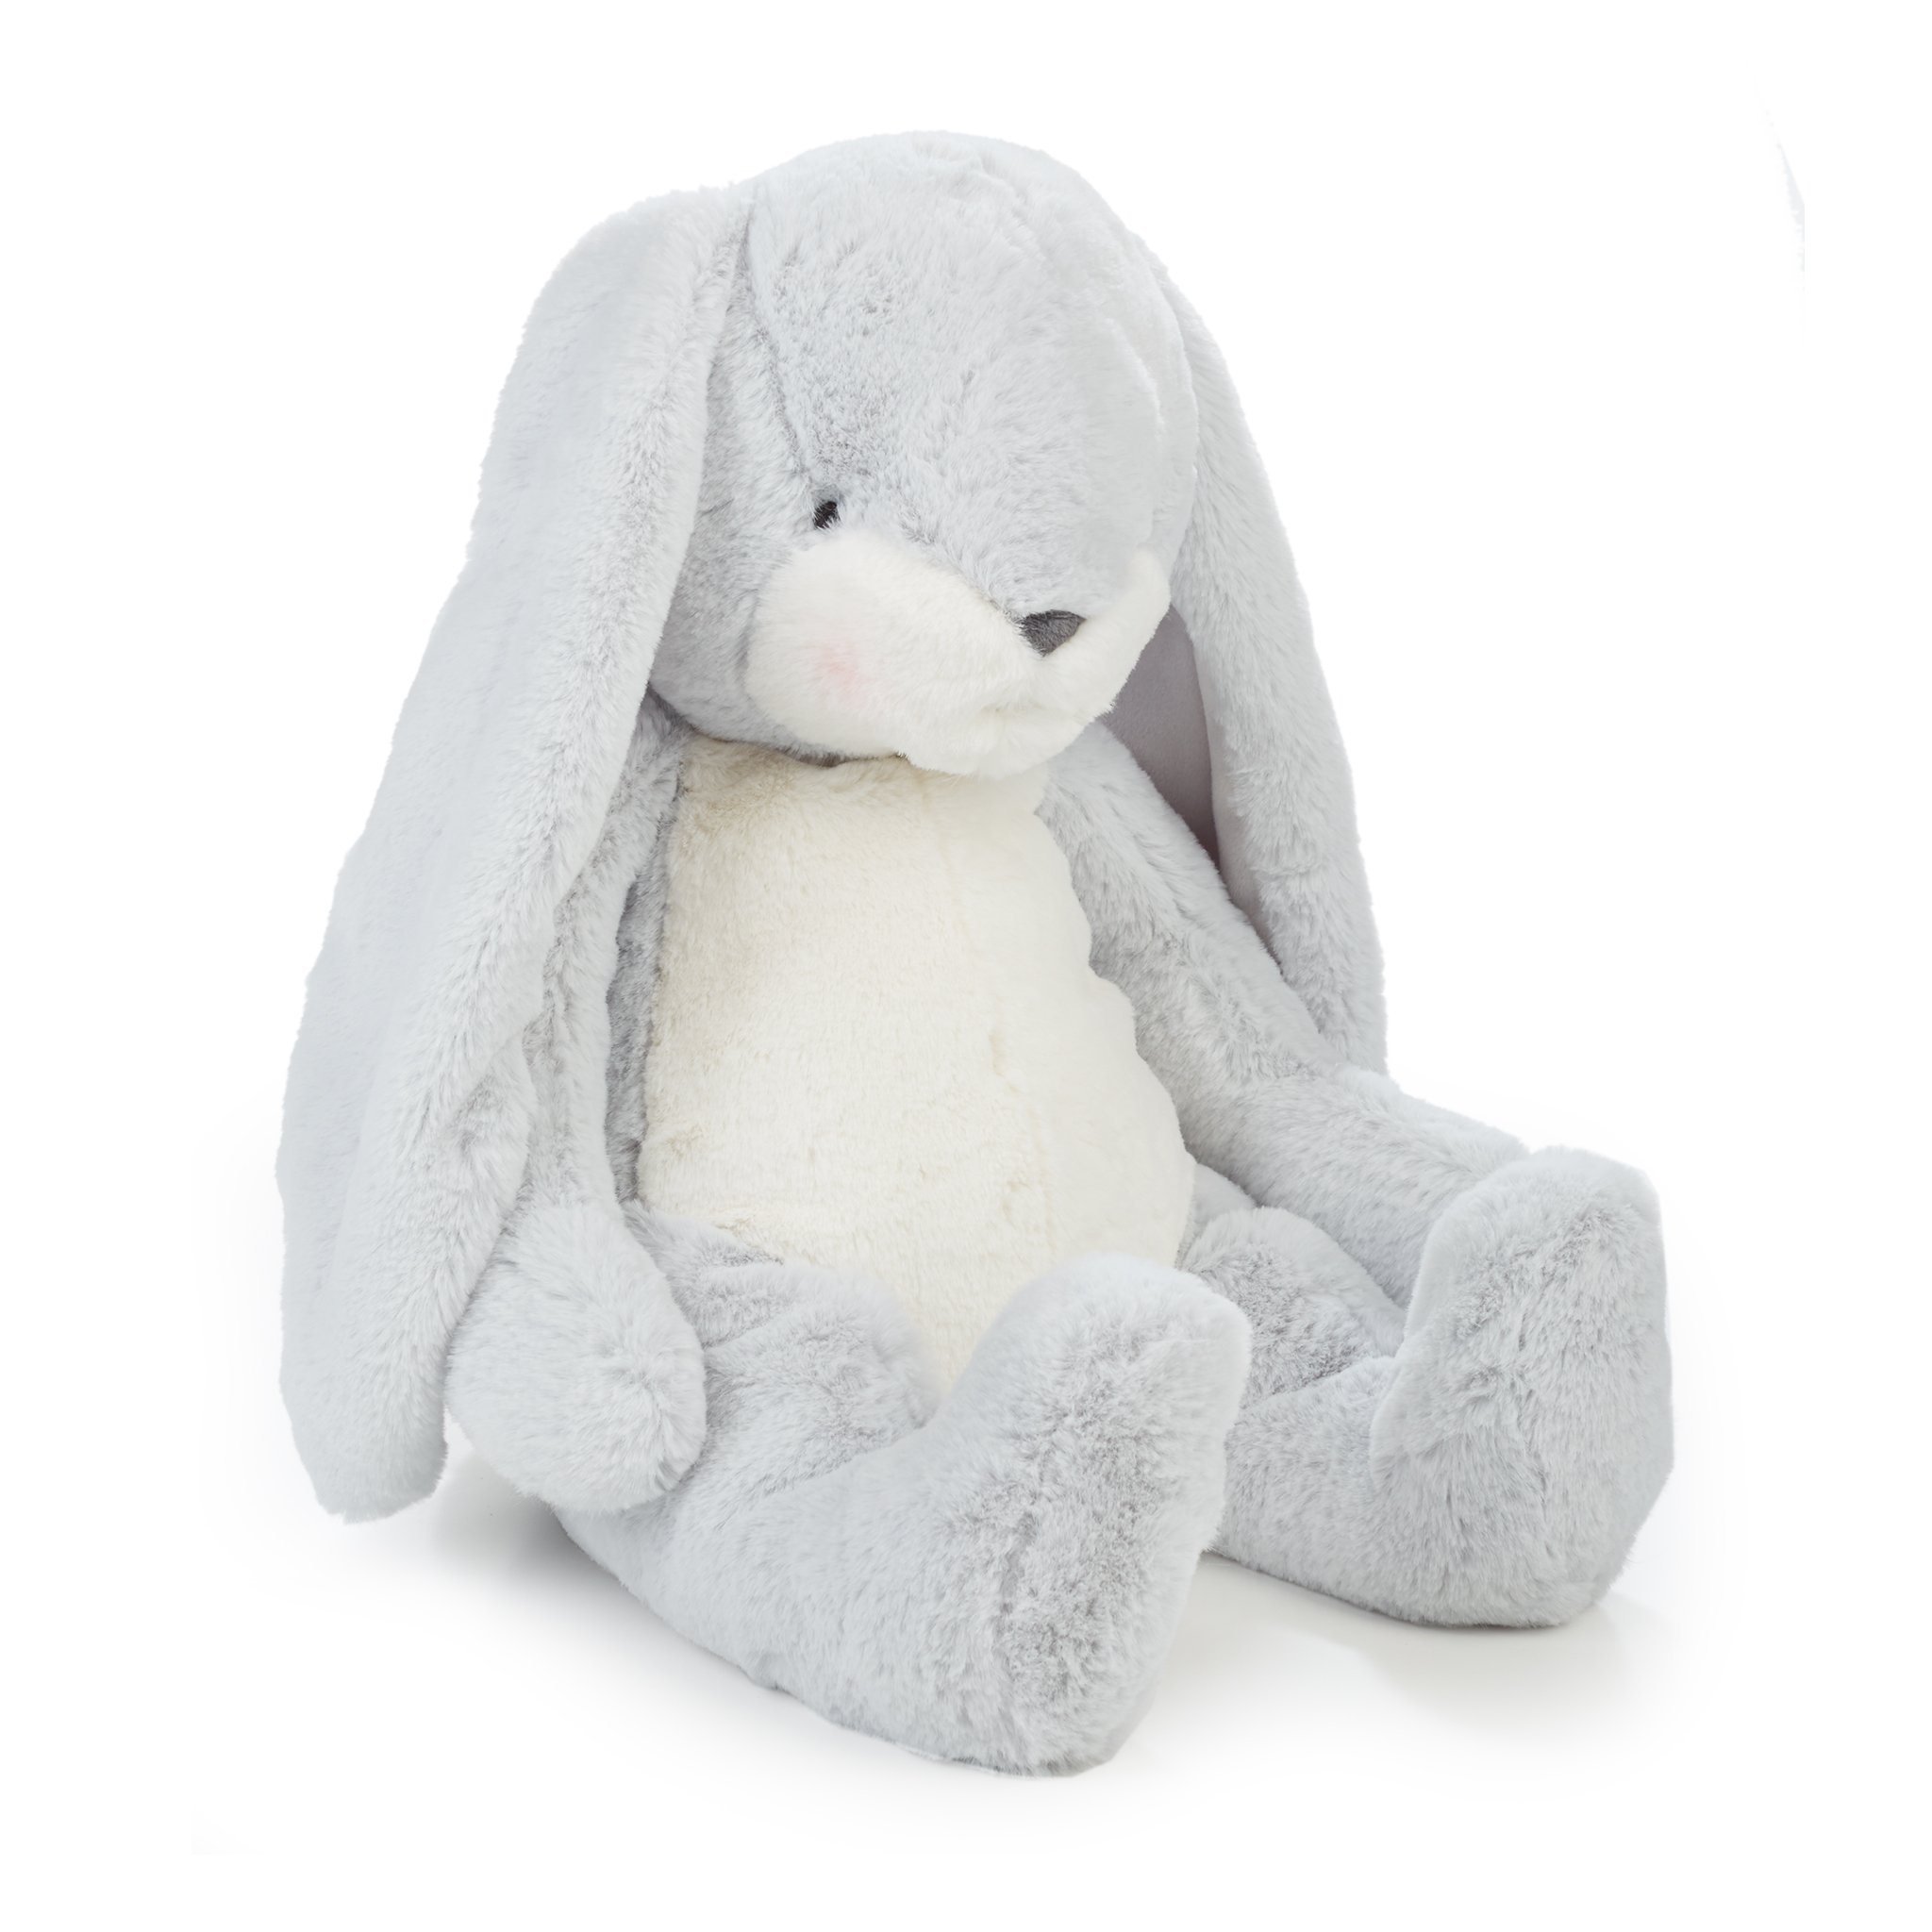 Little Nibble Bunny - Bunnies By The Bay Plush Toy